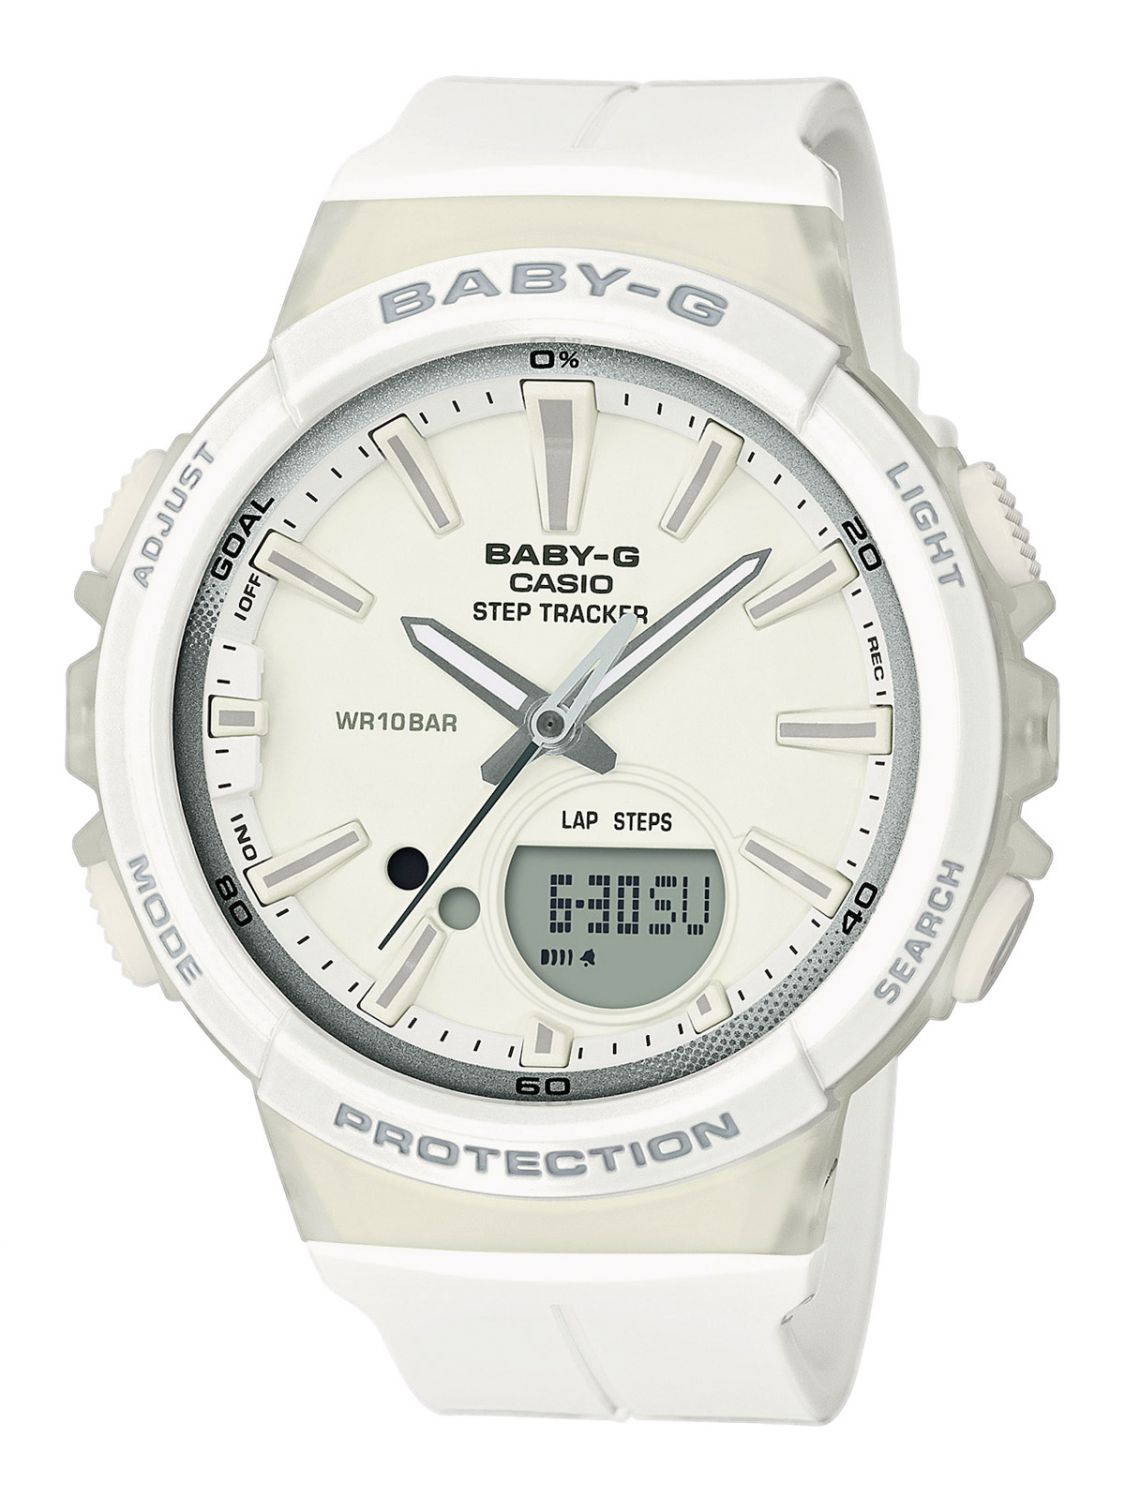 a38934e69 Casio BGS-100-7A1ER Baby-G Step Counter Ladies Watch Image 1 ...